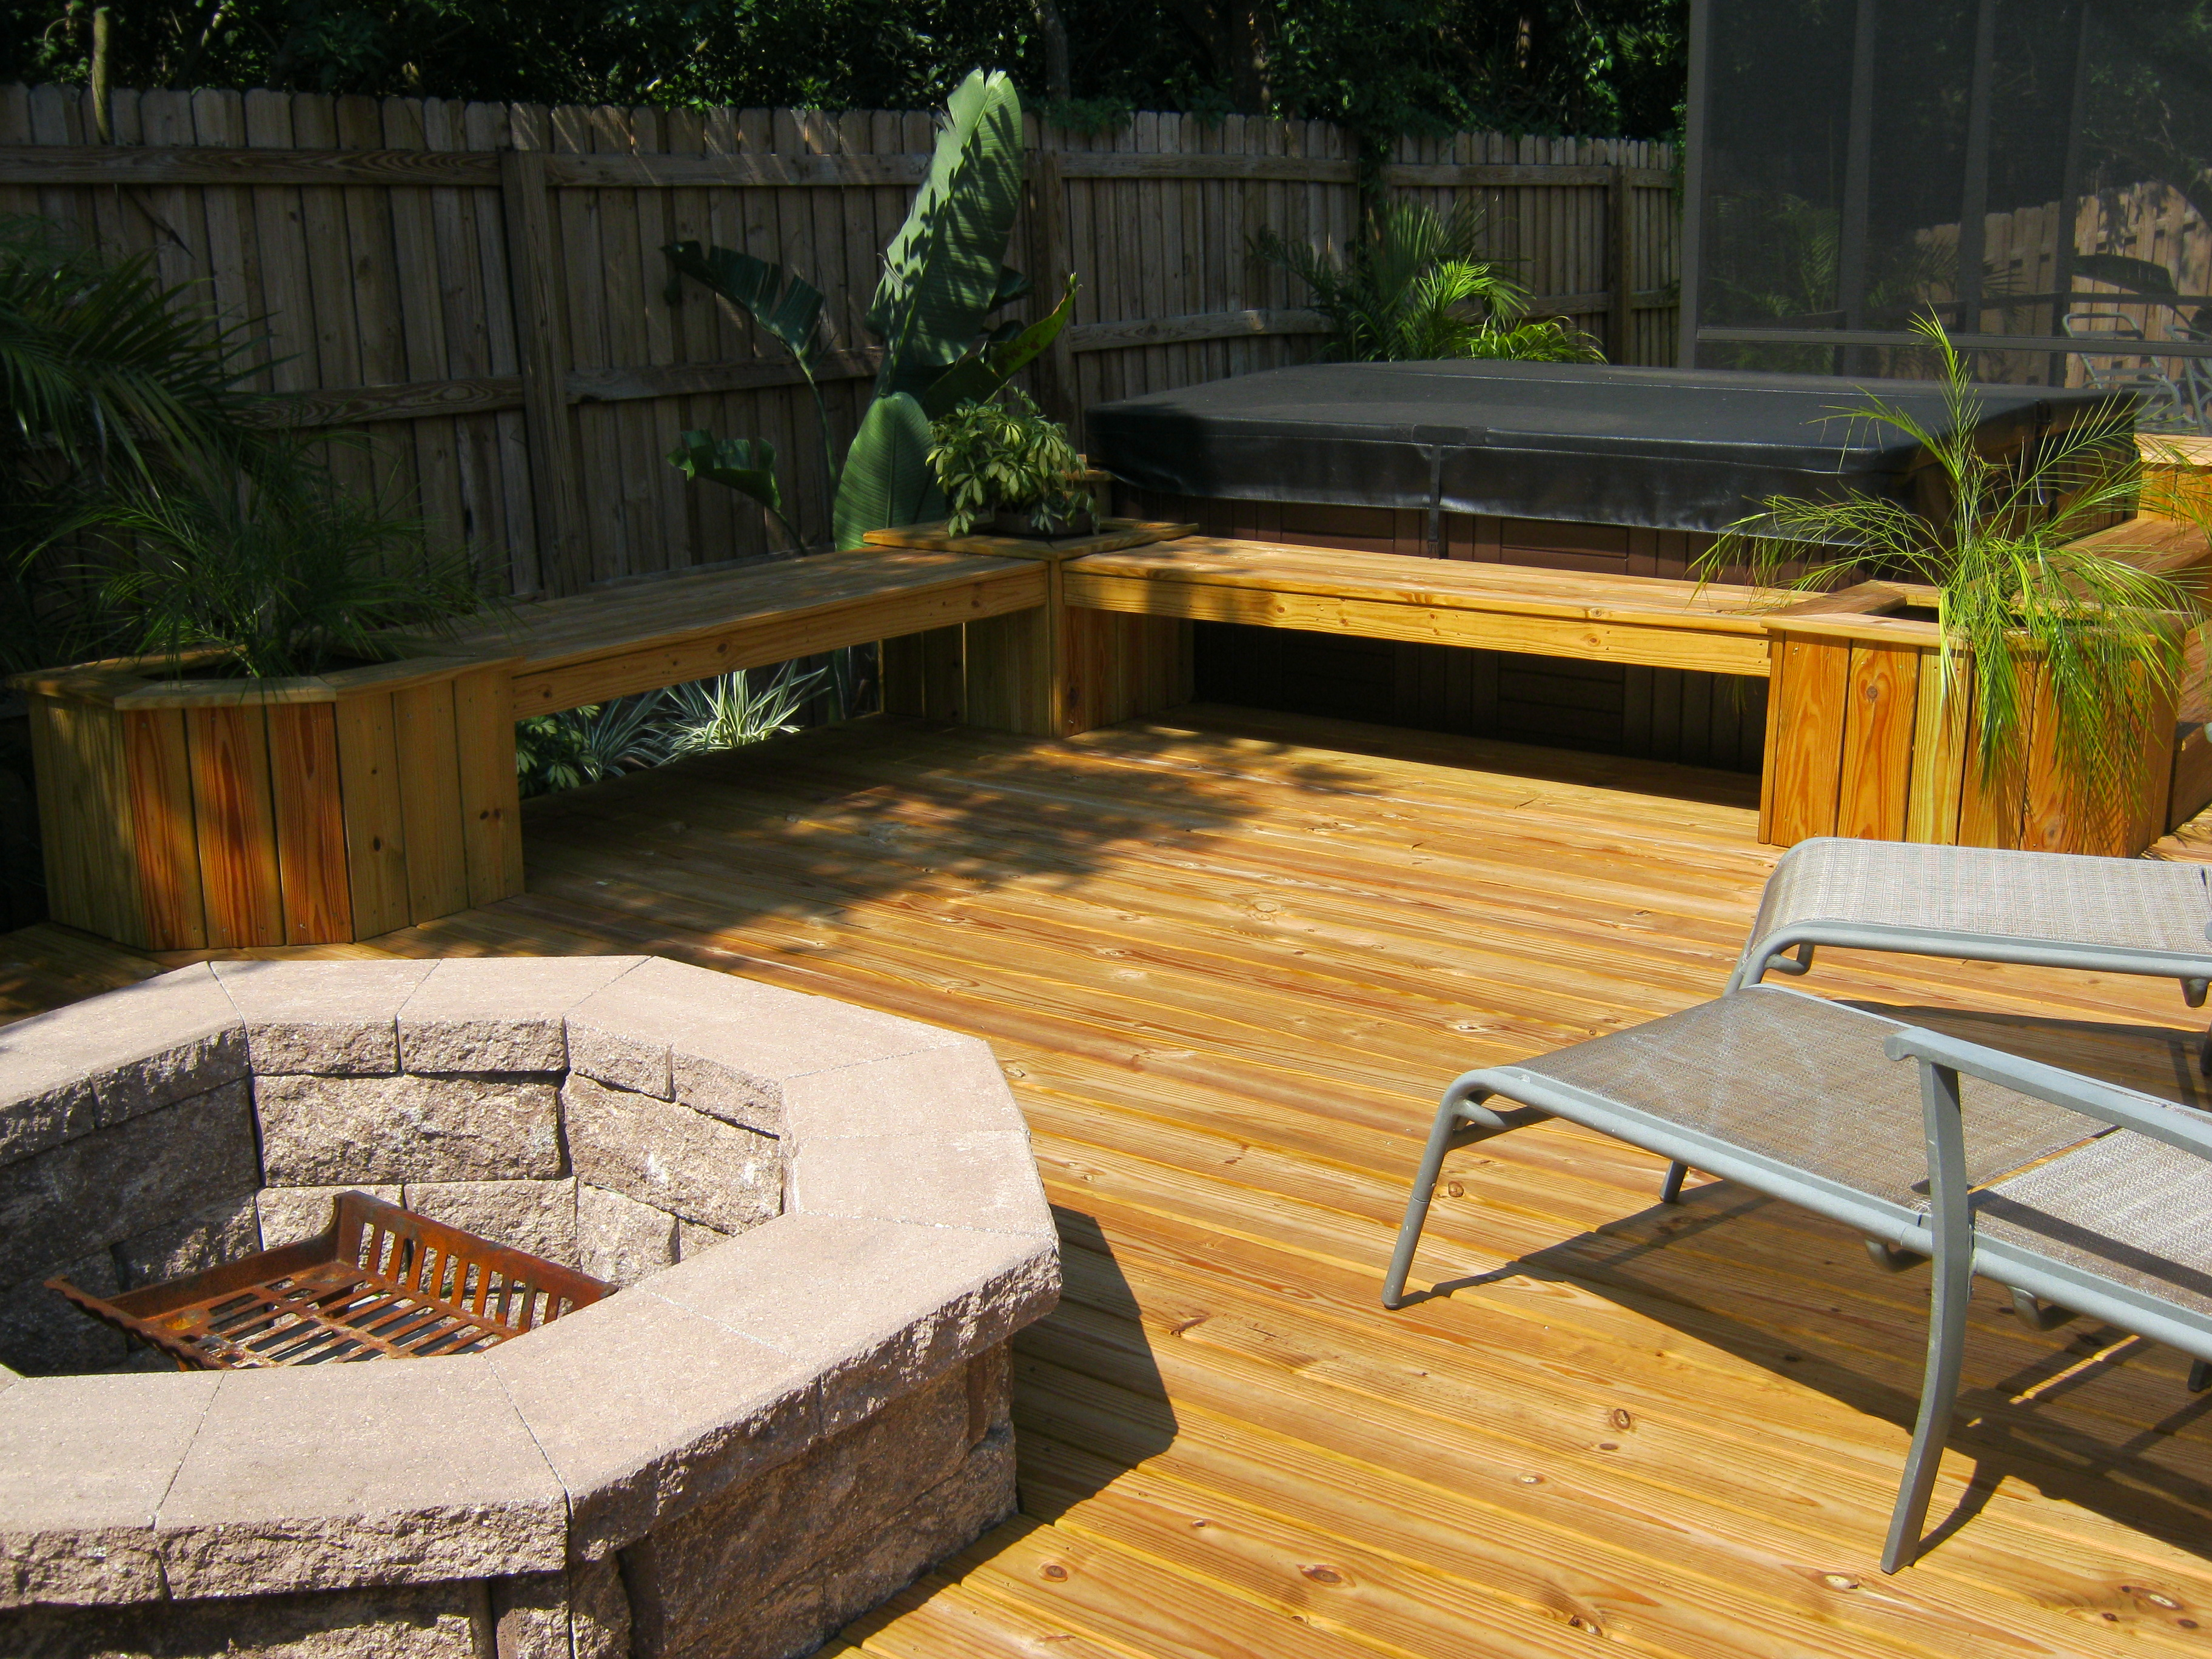 12 Wonderful Deck Fire Pits For Wooden Decks Gallery Deck Home regarding sizing 3648 X 2736